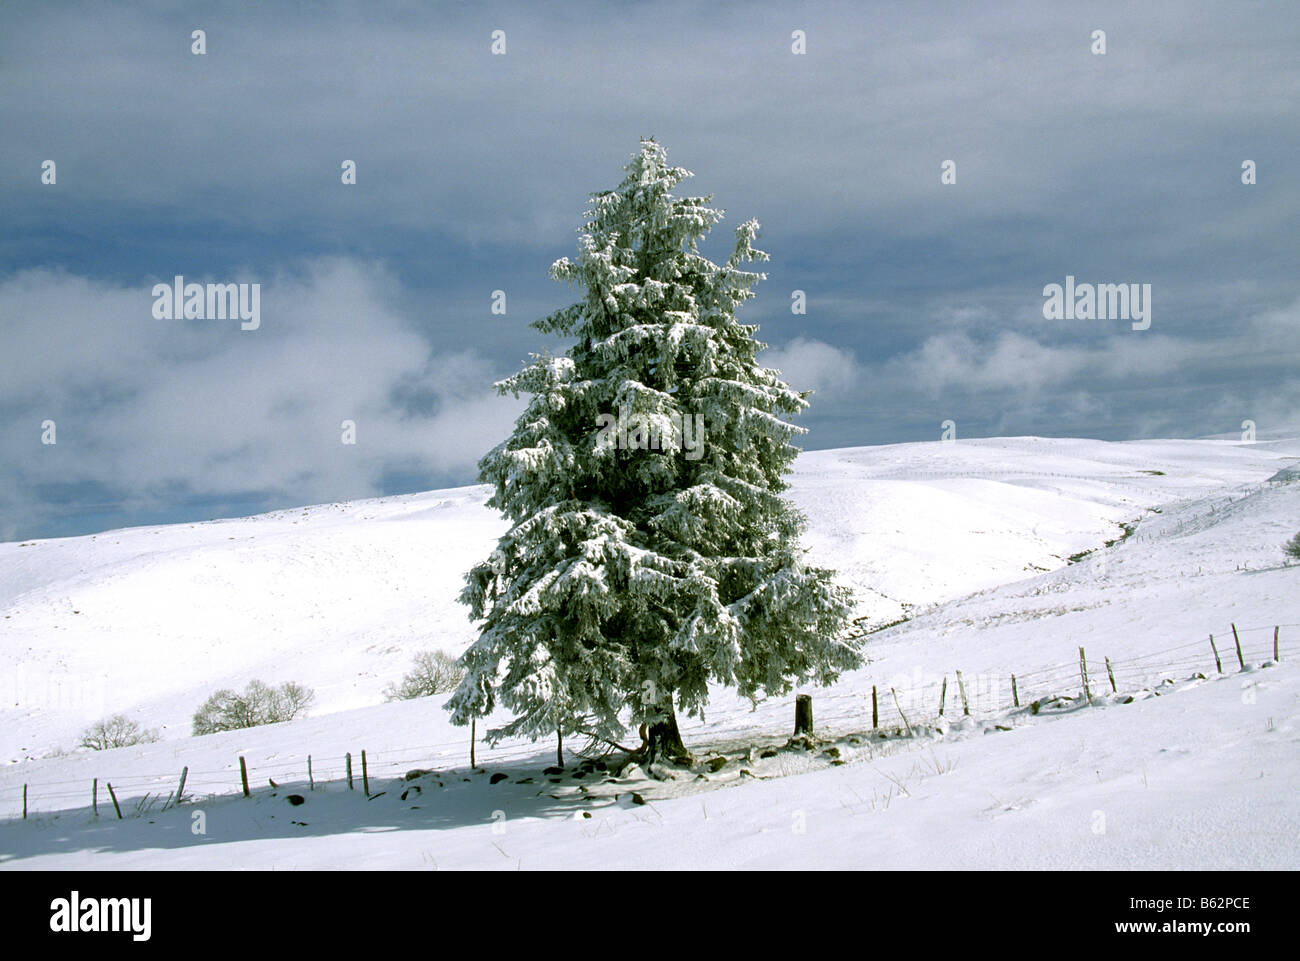 Fir tree in winter snow landscape scene - Stock Image